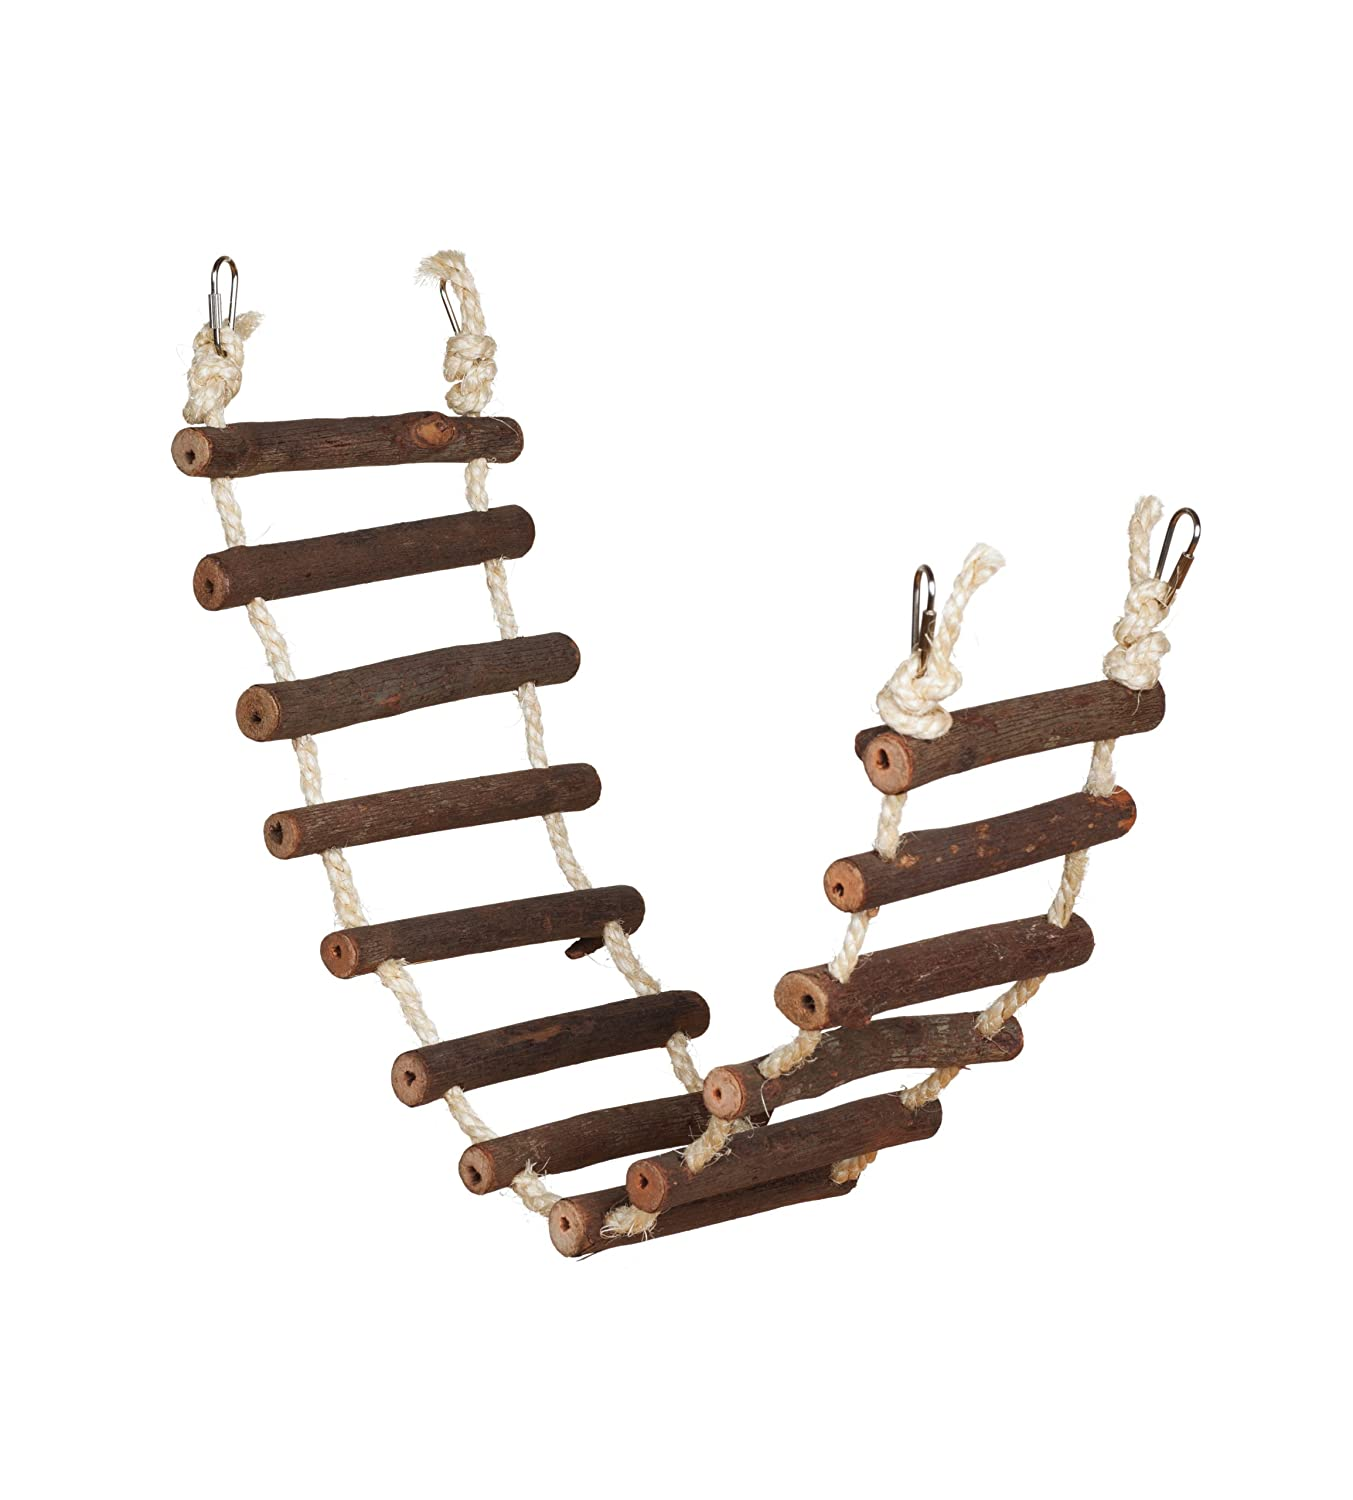 Amazon.com : Prevue Hendryx 62807 Naturals Rope Ladder Bird Toy ... for Rope Ladder Ship  51ane